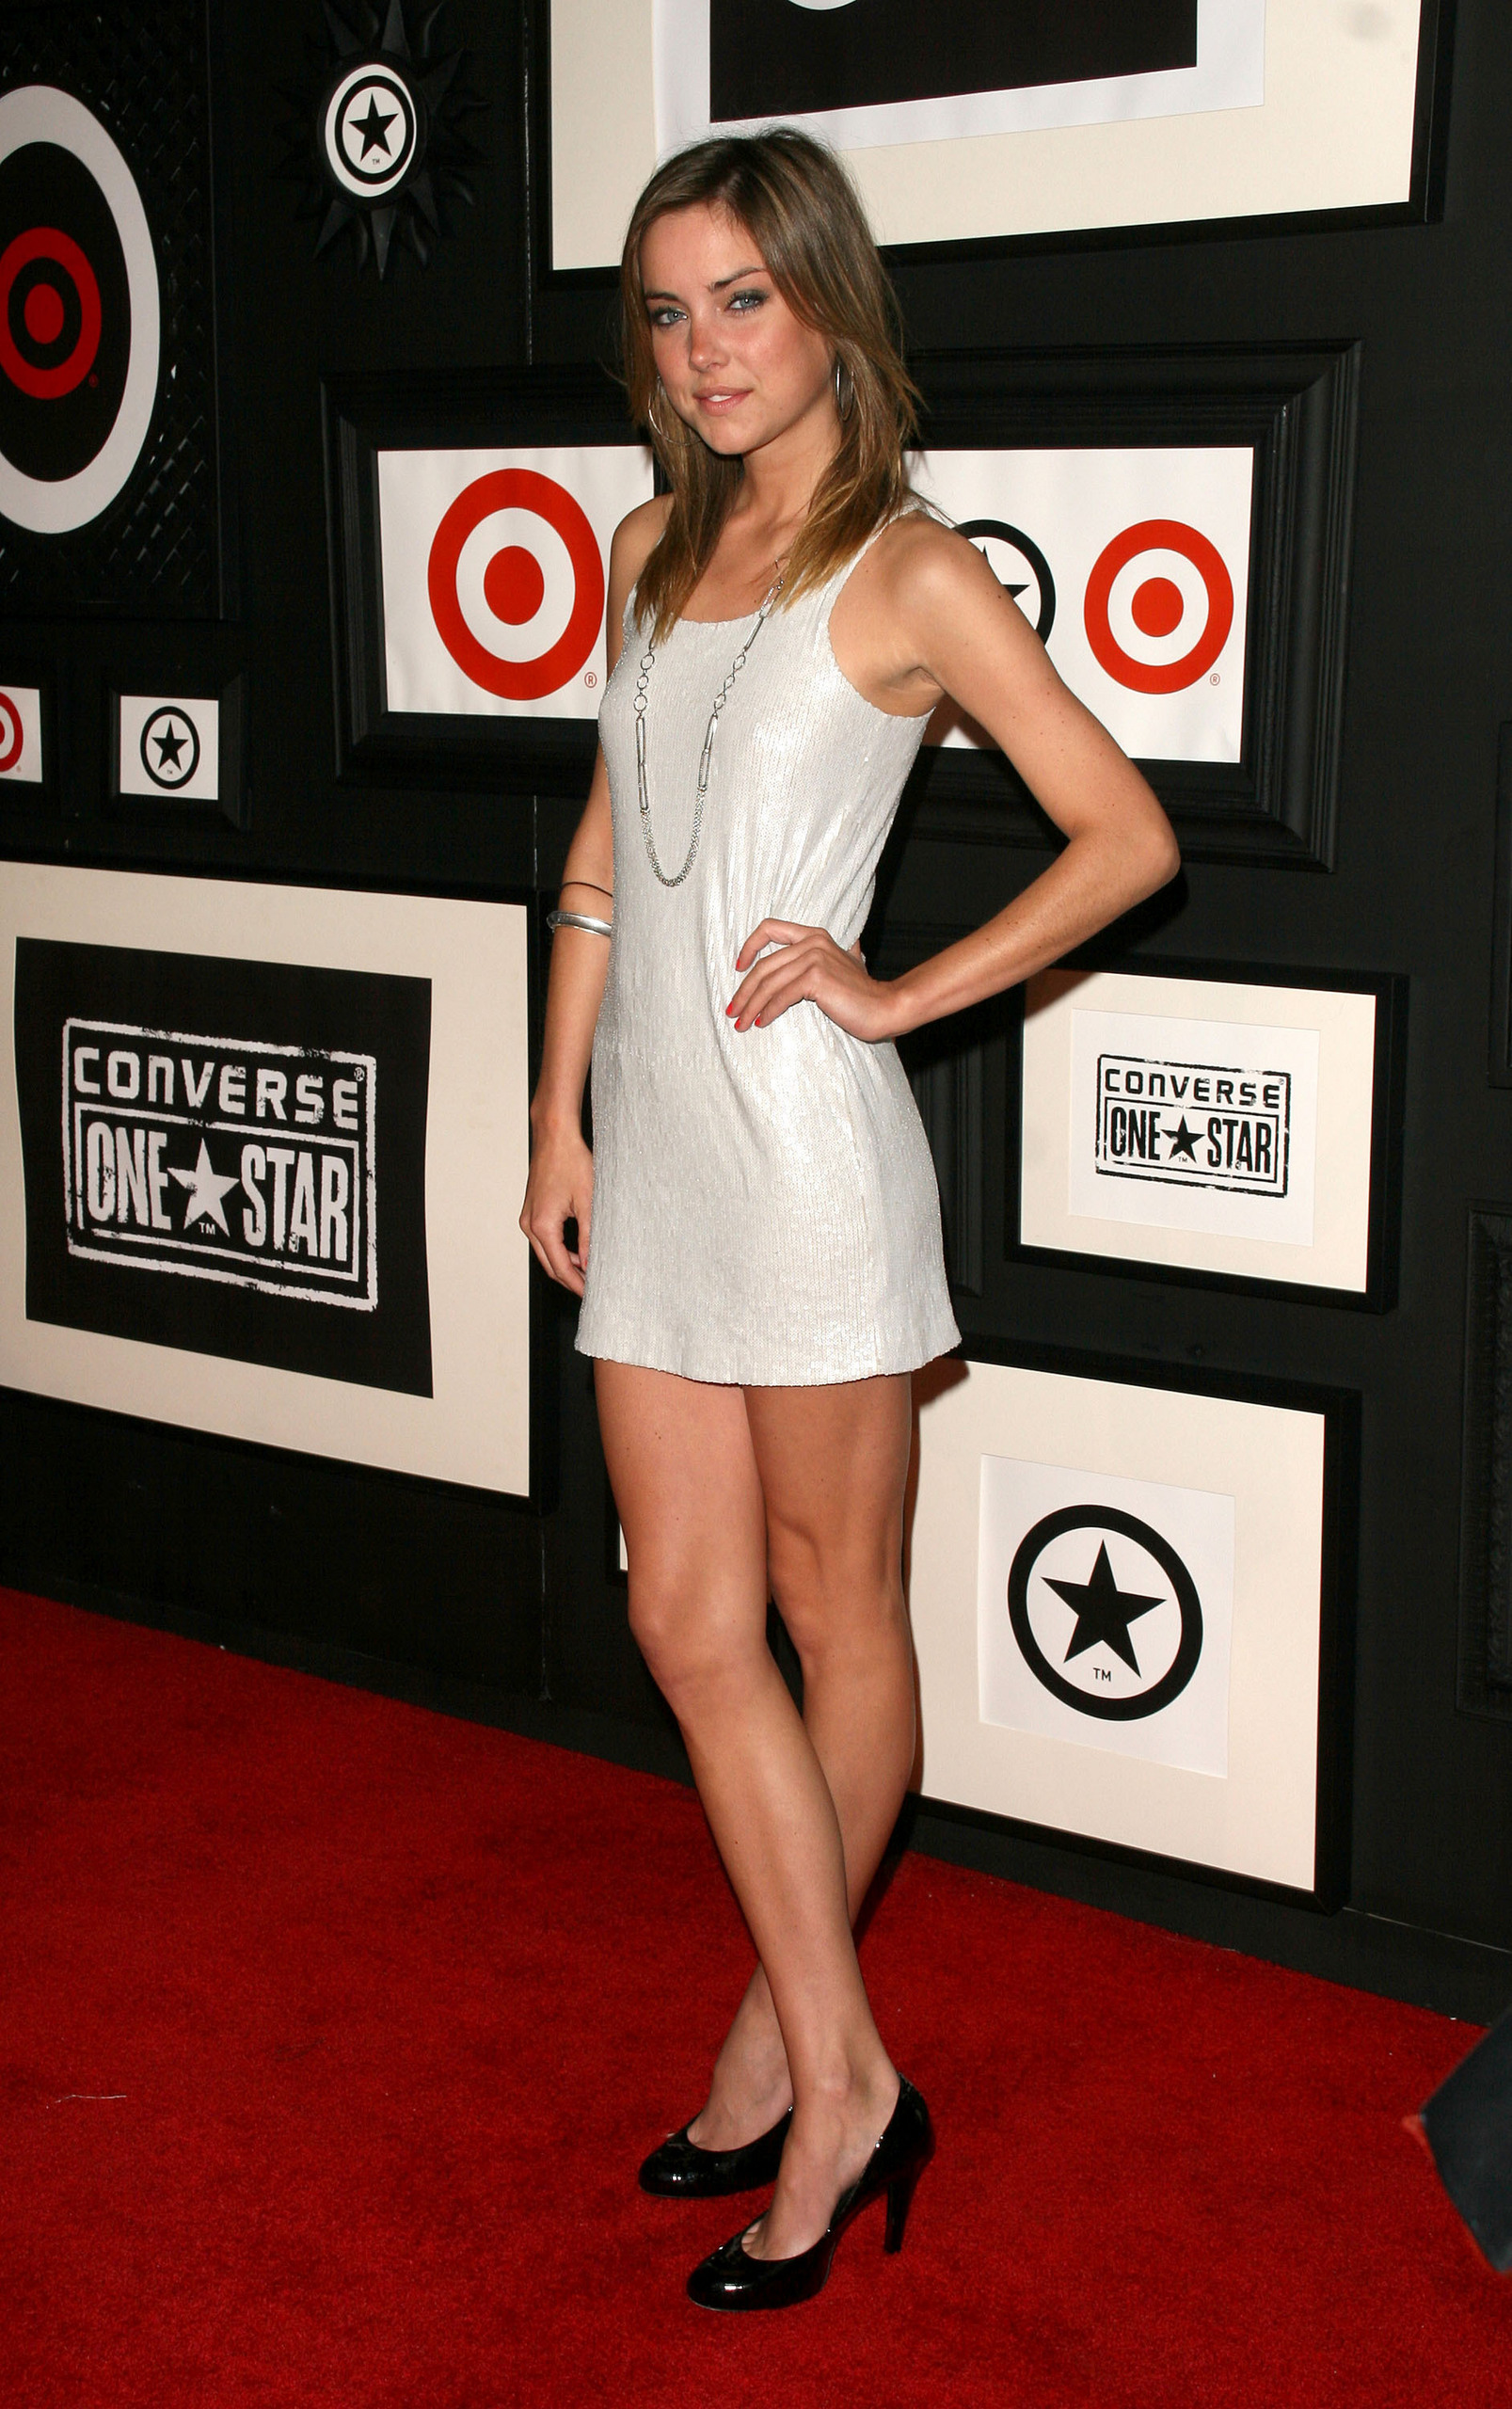 Pussy Jessica Stroup naked photo 2017